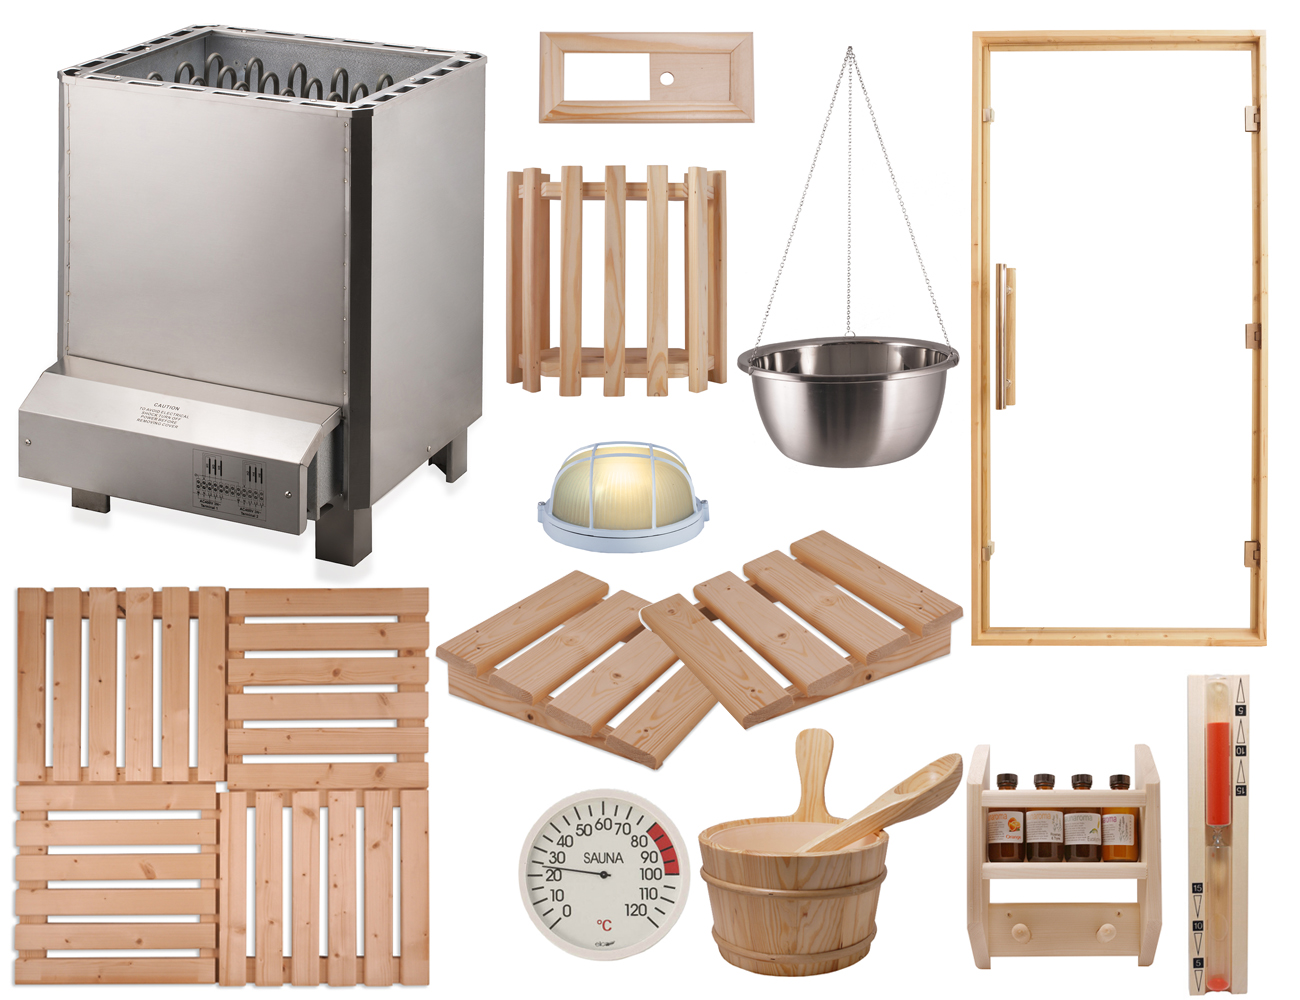 Commercial Sauna Installation Kits